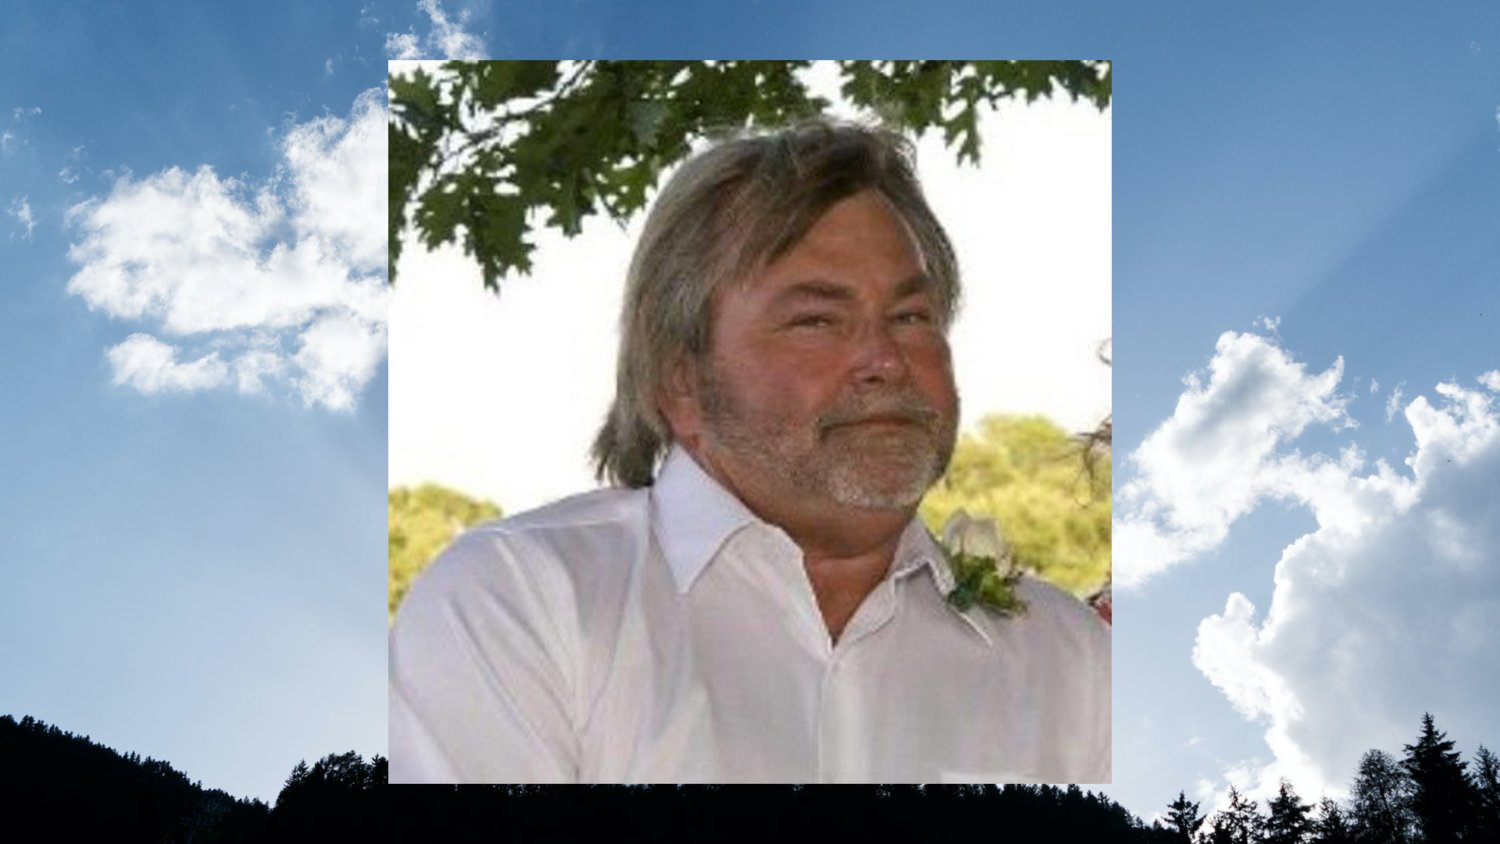 Jerry Wayne Bolden passed away May 19 at the age of 62. He leaves behind an extensive family. He lived in Katy with his wife and children since 1998, was an automotive enthusiast and was the owner-operator of J&D Environmental in Katy.